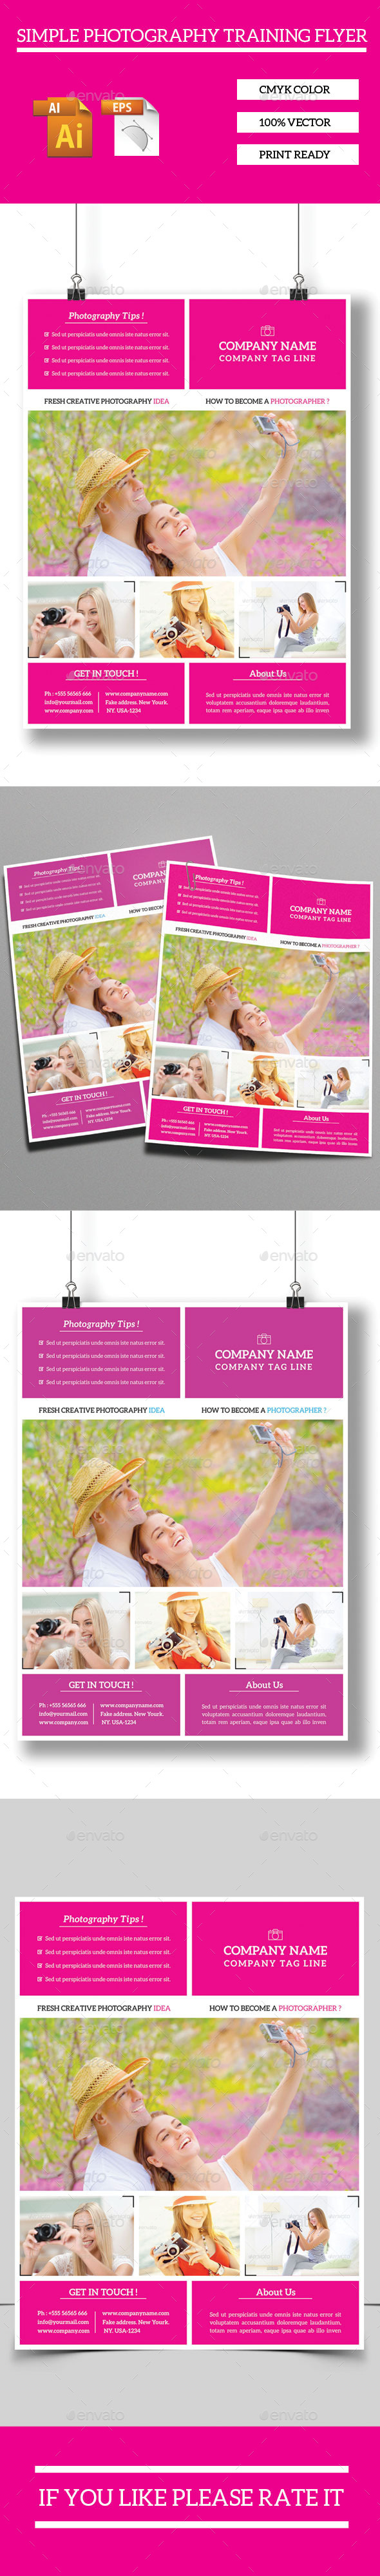 GraphicRiver Simple Photography Training Flyer 10053028